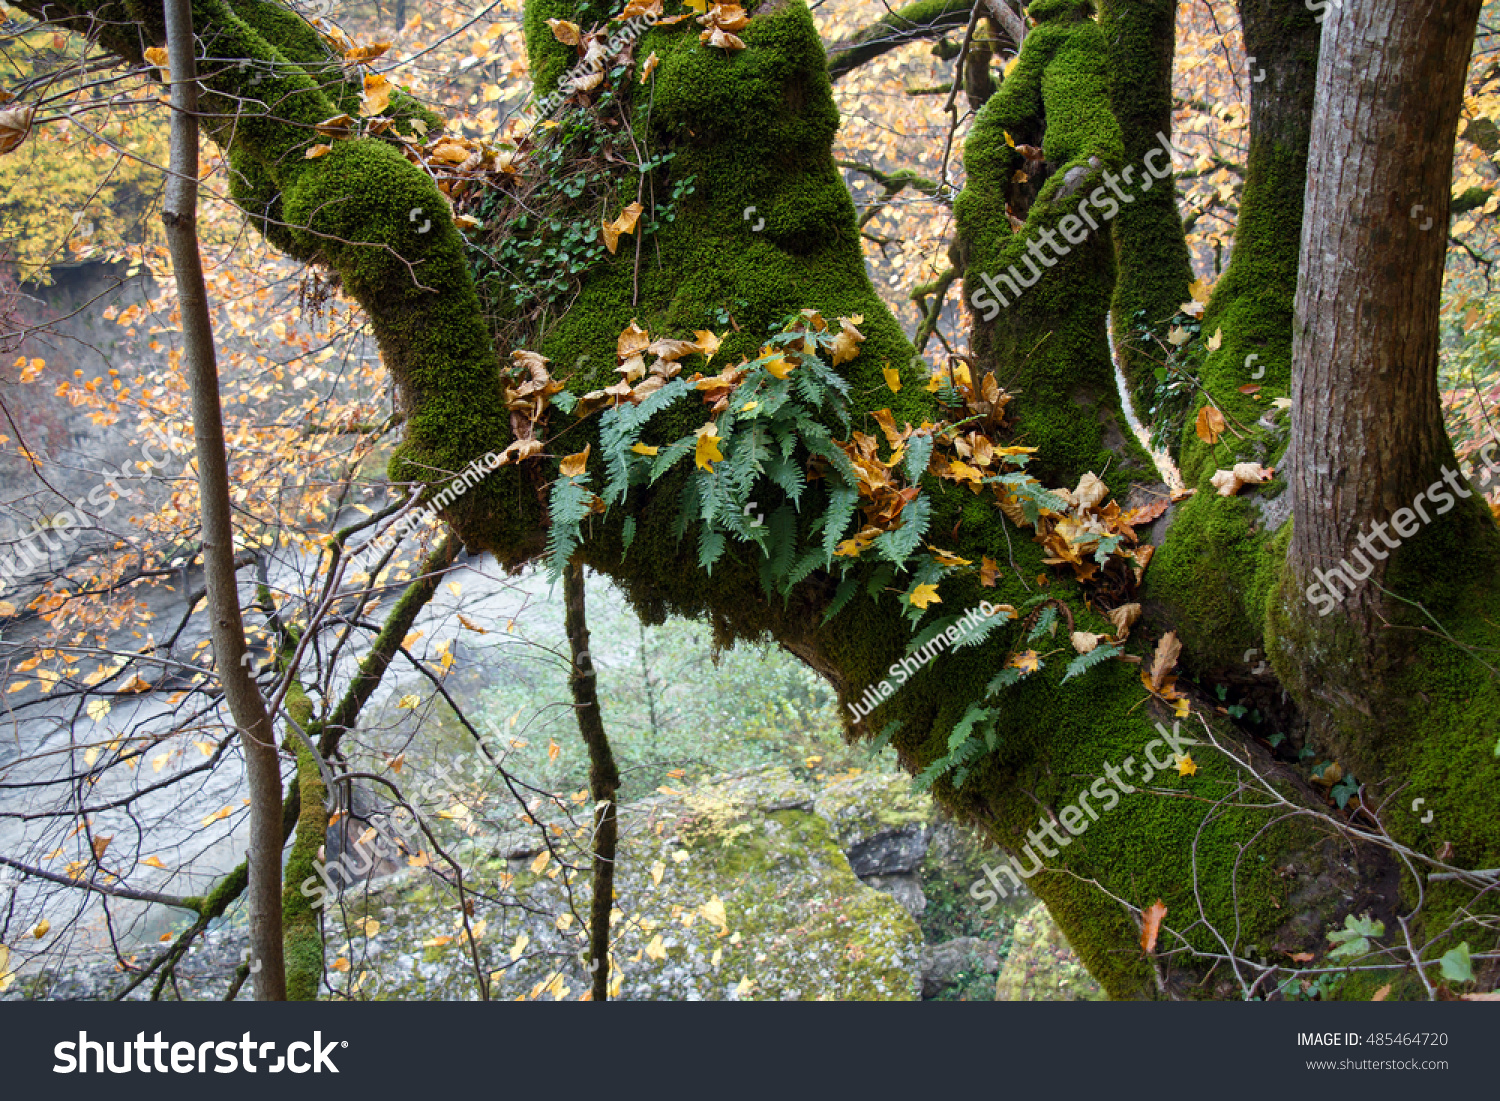 Epiphyte plants moss fern growing on stock photo 485464720 shutterstock - Flowers that grow on tree trunks ...